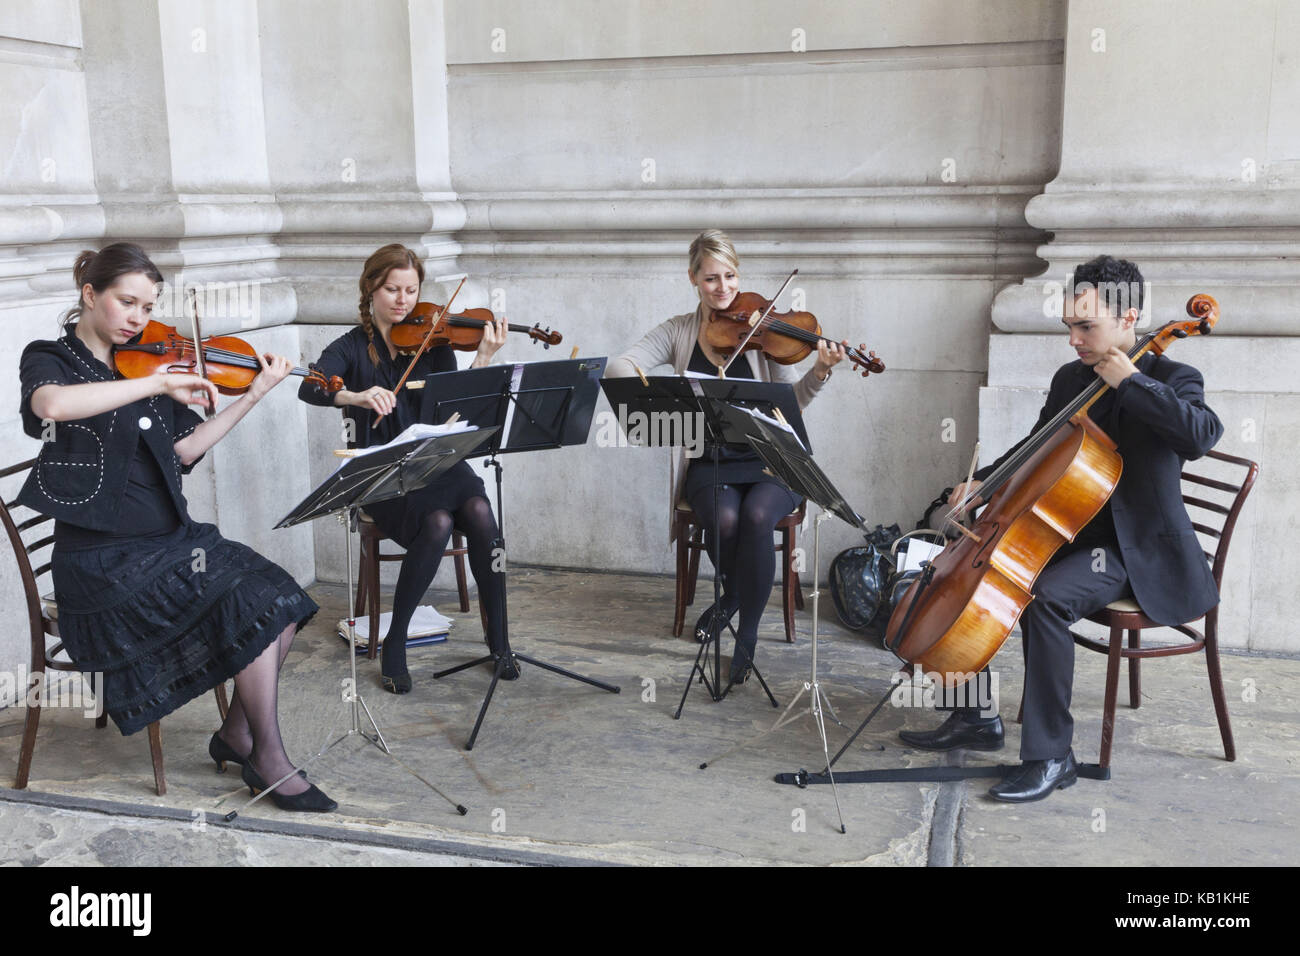 England, London, The city, royal Exchange, musician, classical music, - Stock Image